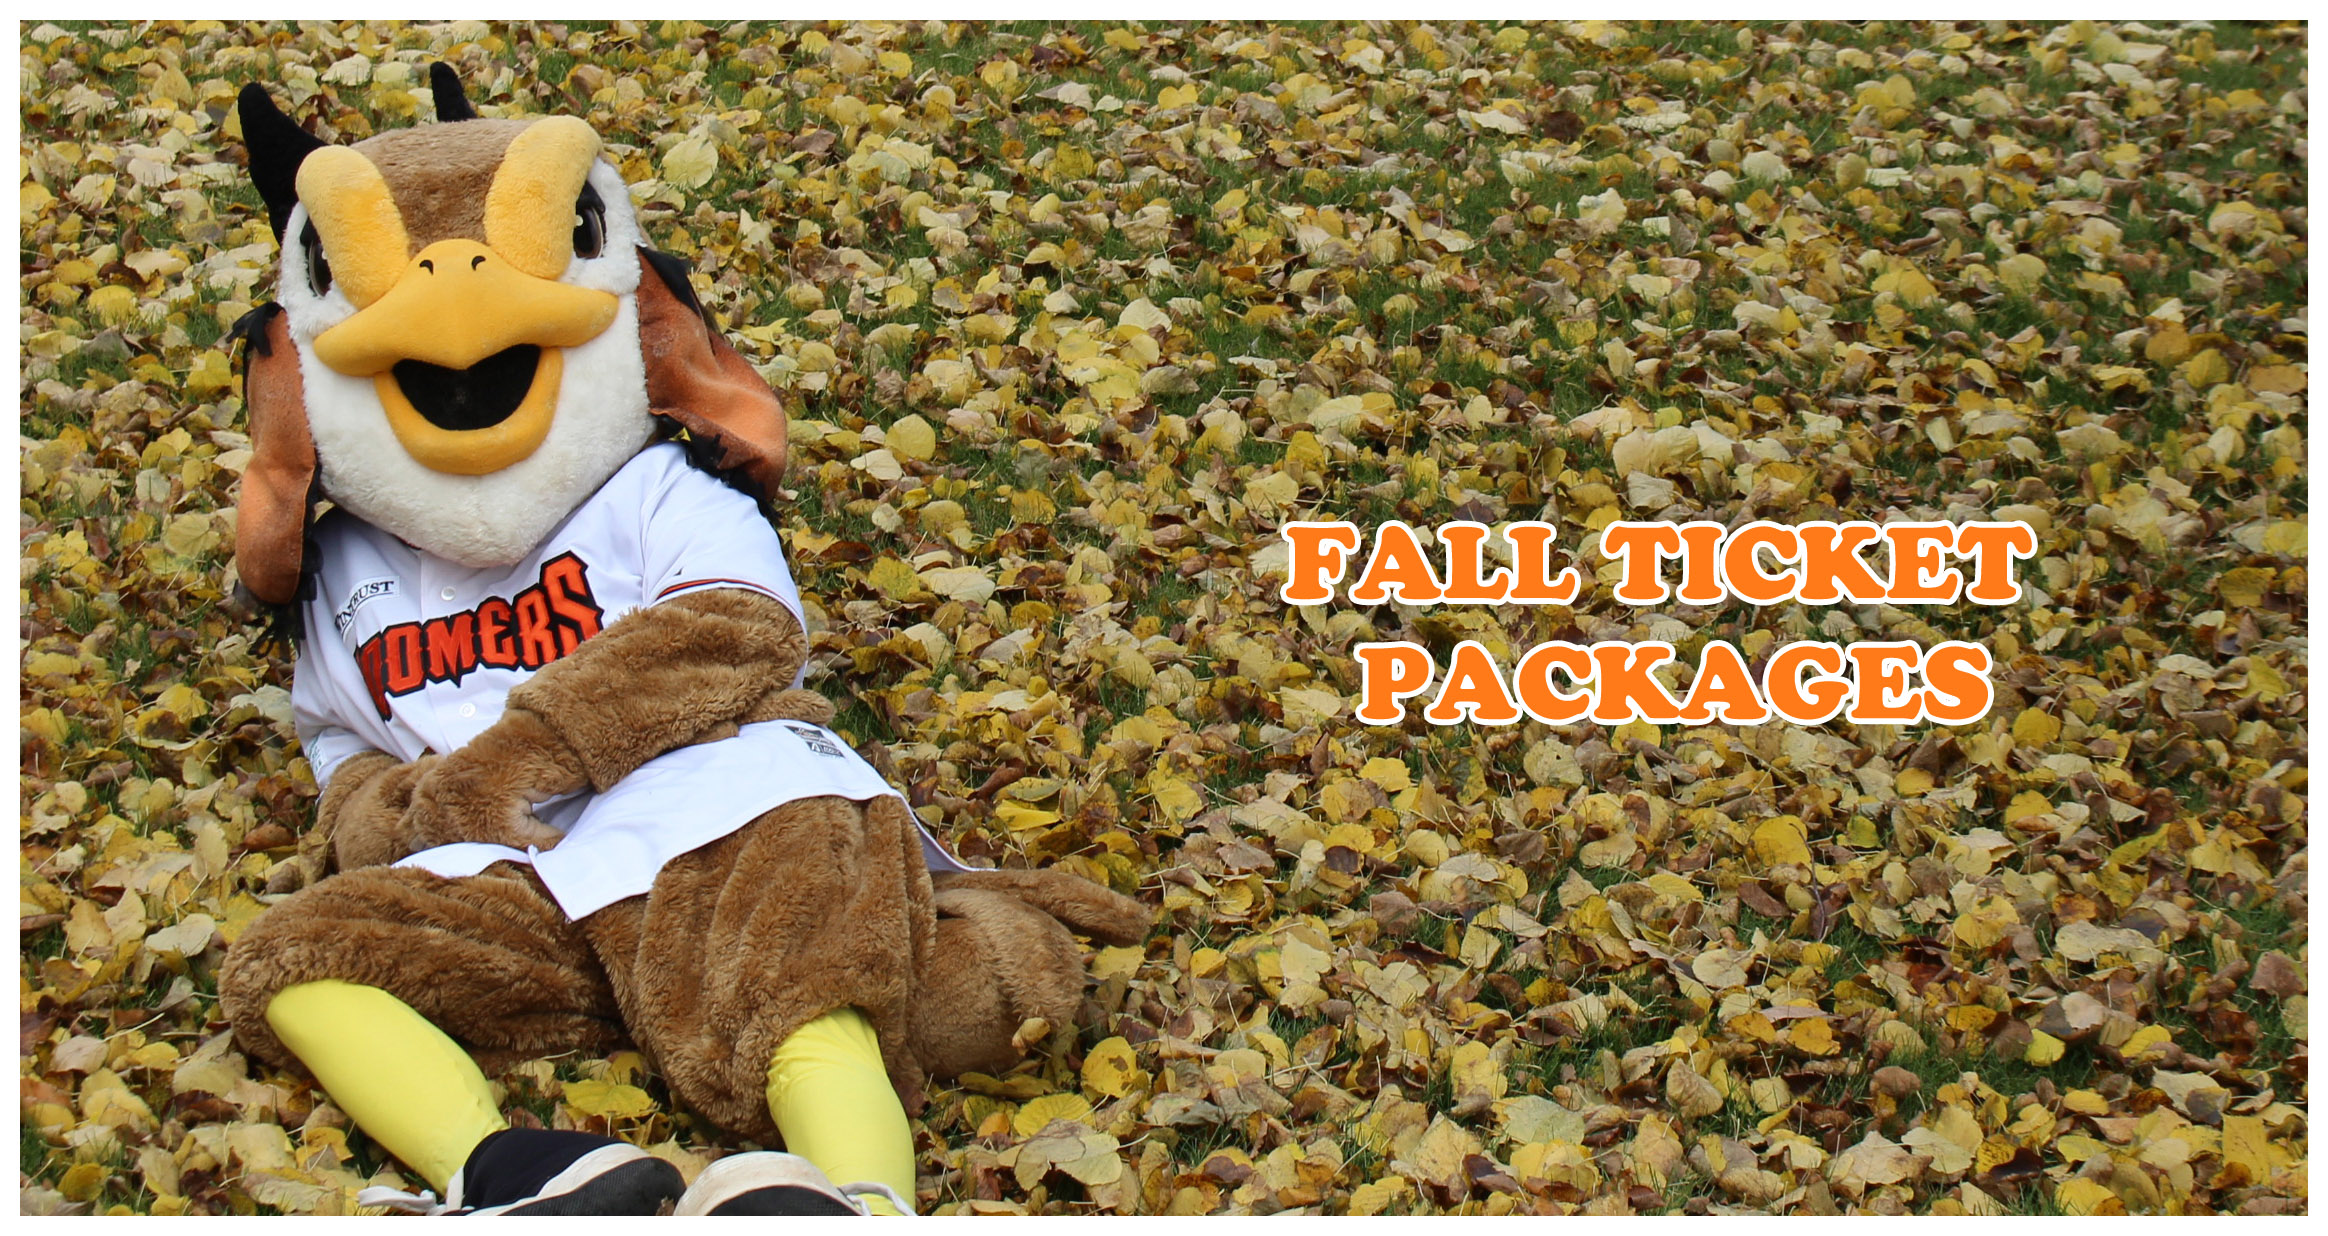 Fall Ticket Packages On Sale Now!